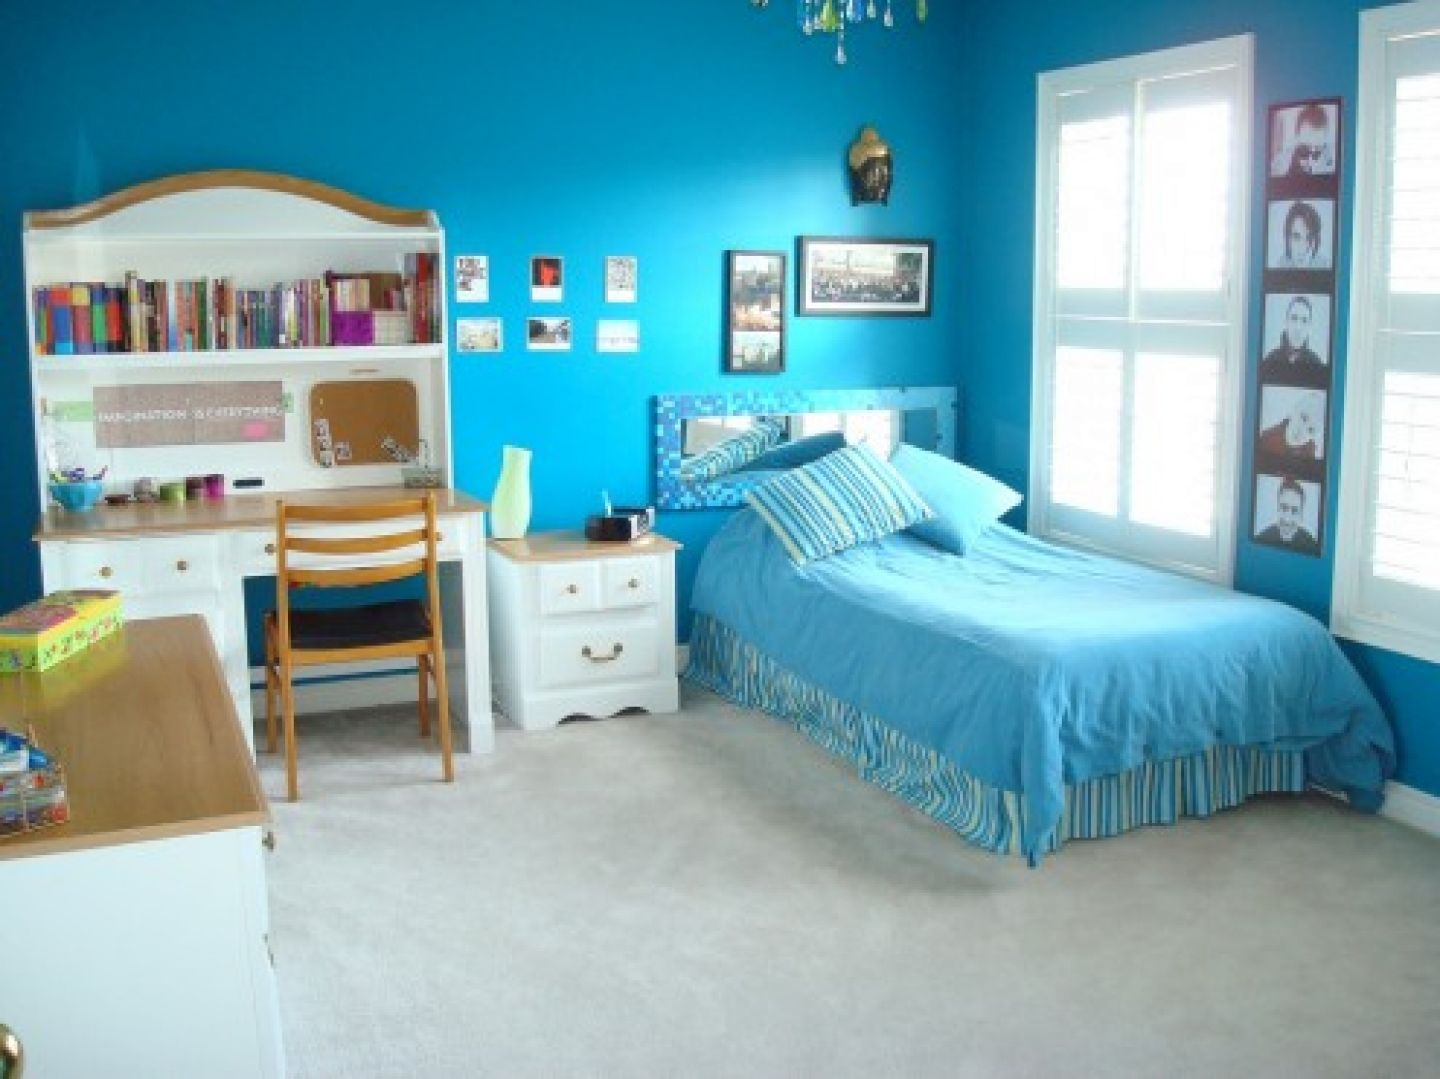 Bedroom Ideas For Teenage Girls Teal And Brown awesome teen girl bedroom decorating ideas with blue bedding